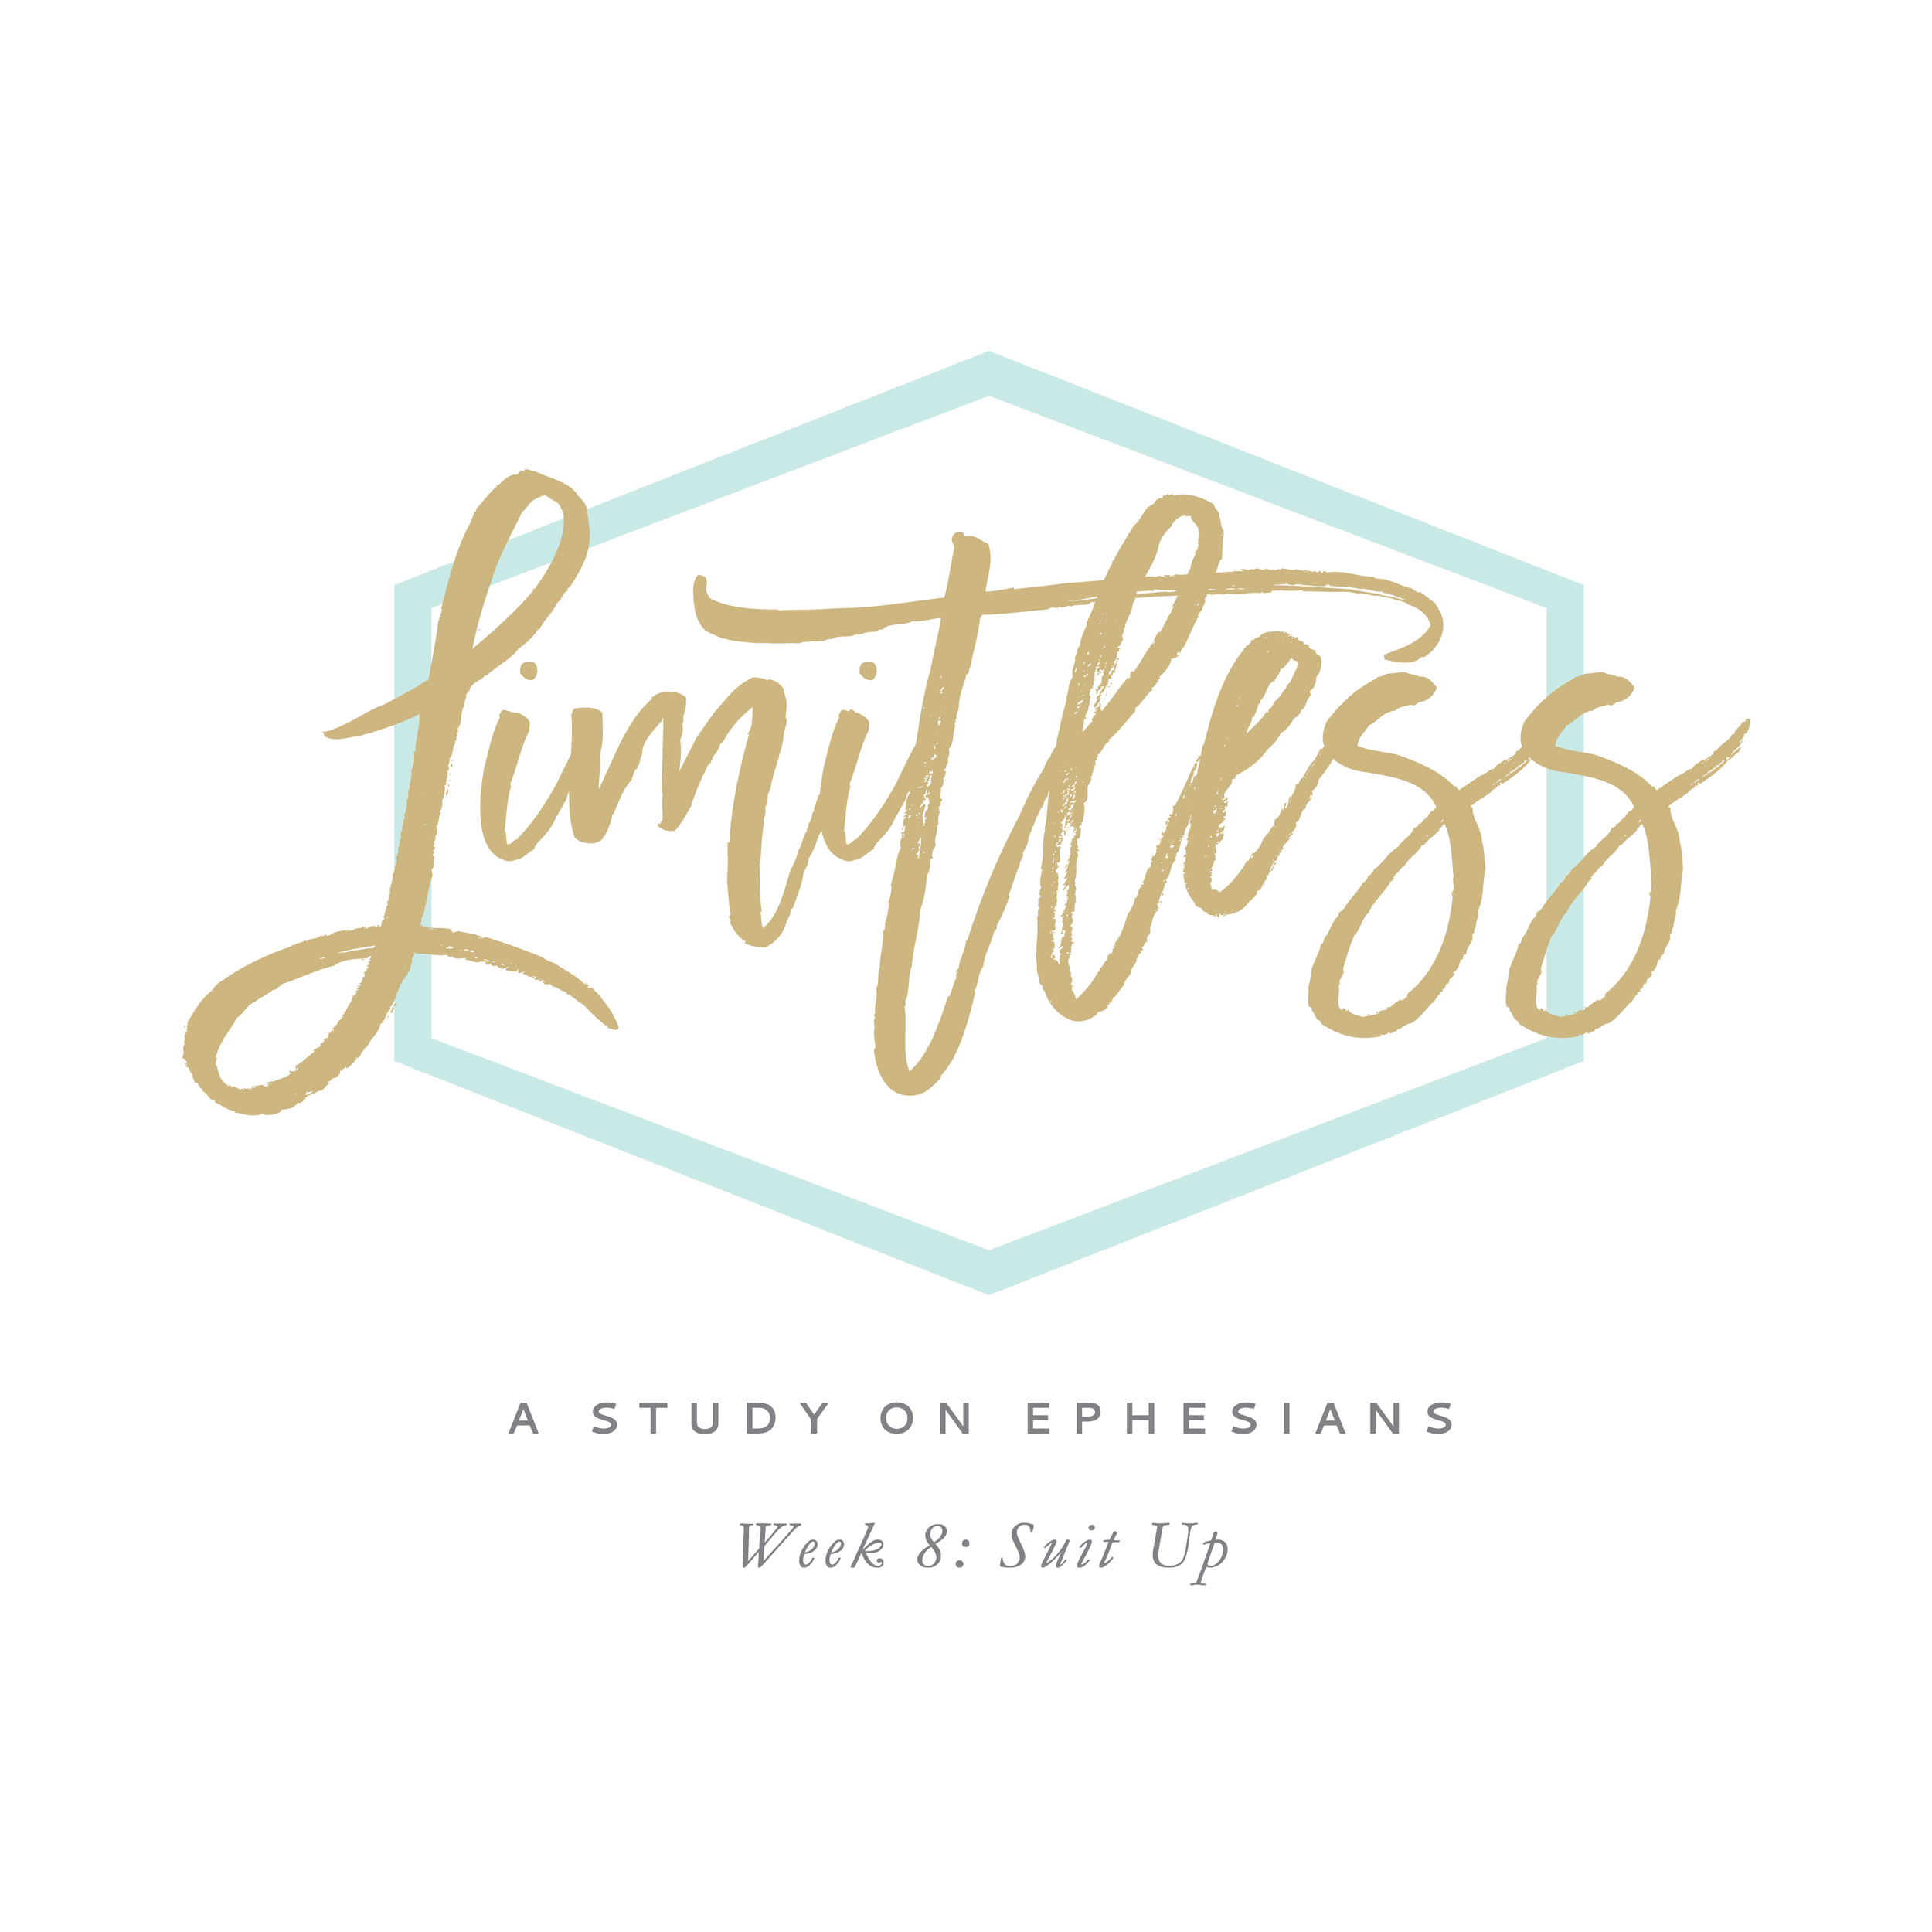 Limitless: A Study on Ephesians by Leslie Ann Jones. This podcast covers week 8 of material, found on page 46 of the workbook.